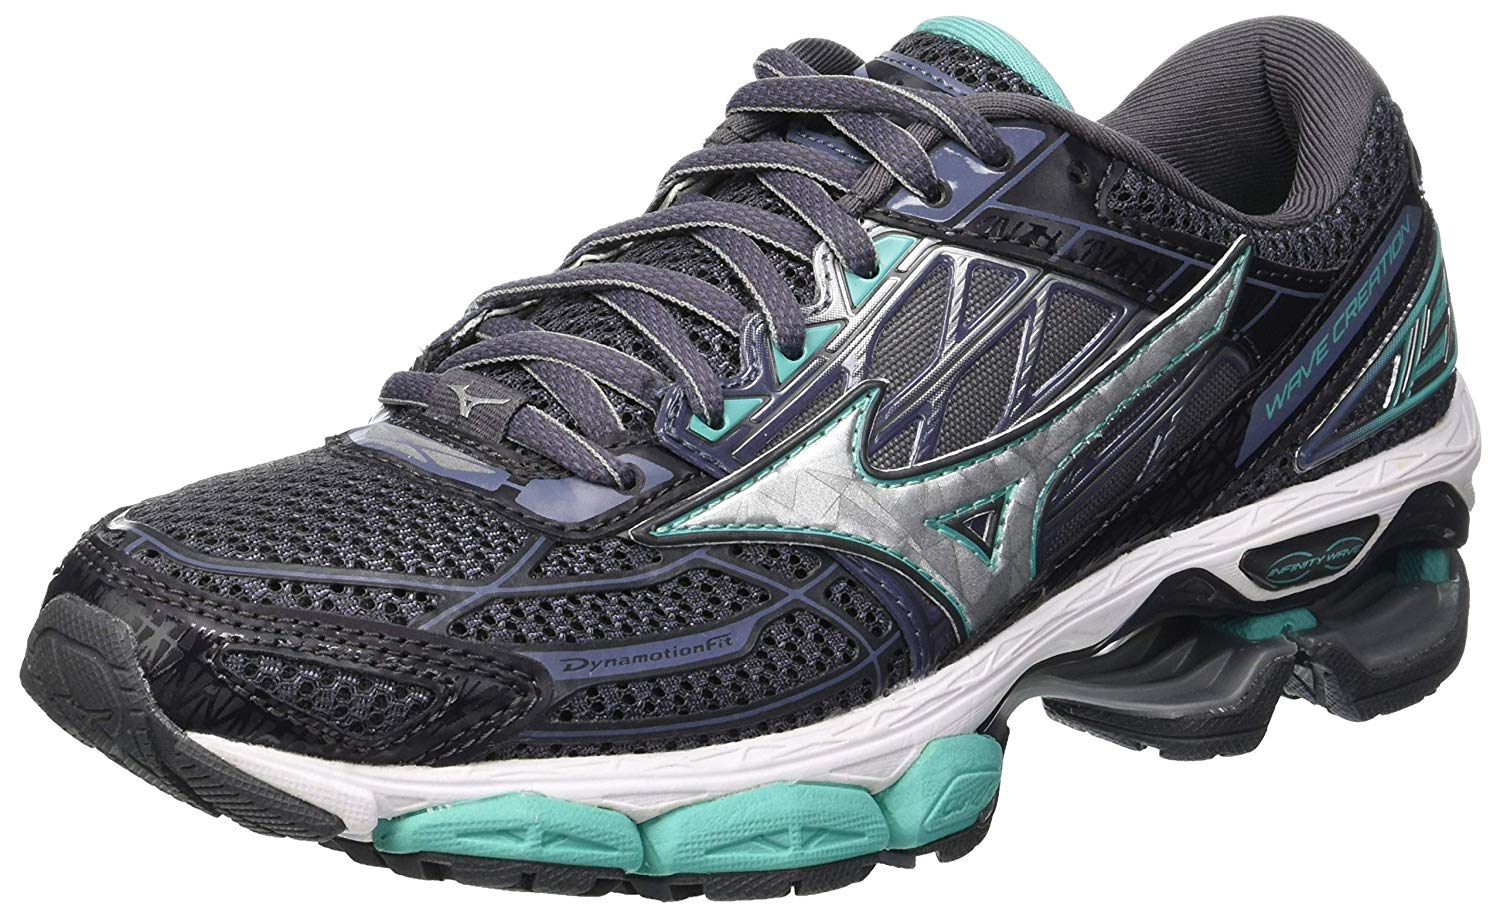 Mizuno Womens Wave Creation 19 Running Shoes Trainers Sneakers Gym ... 28e8789530d